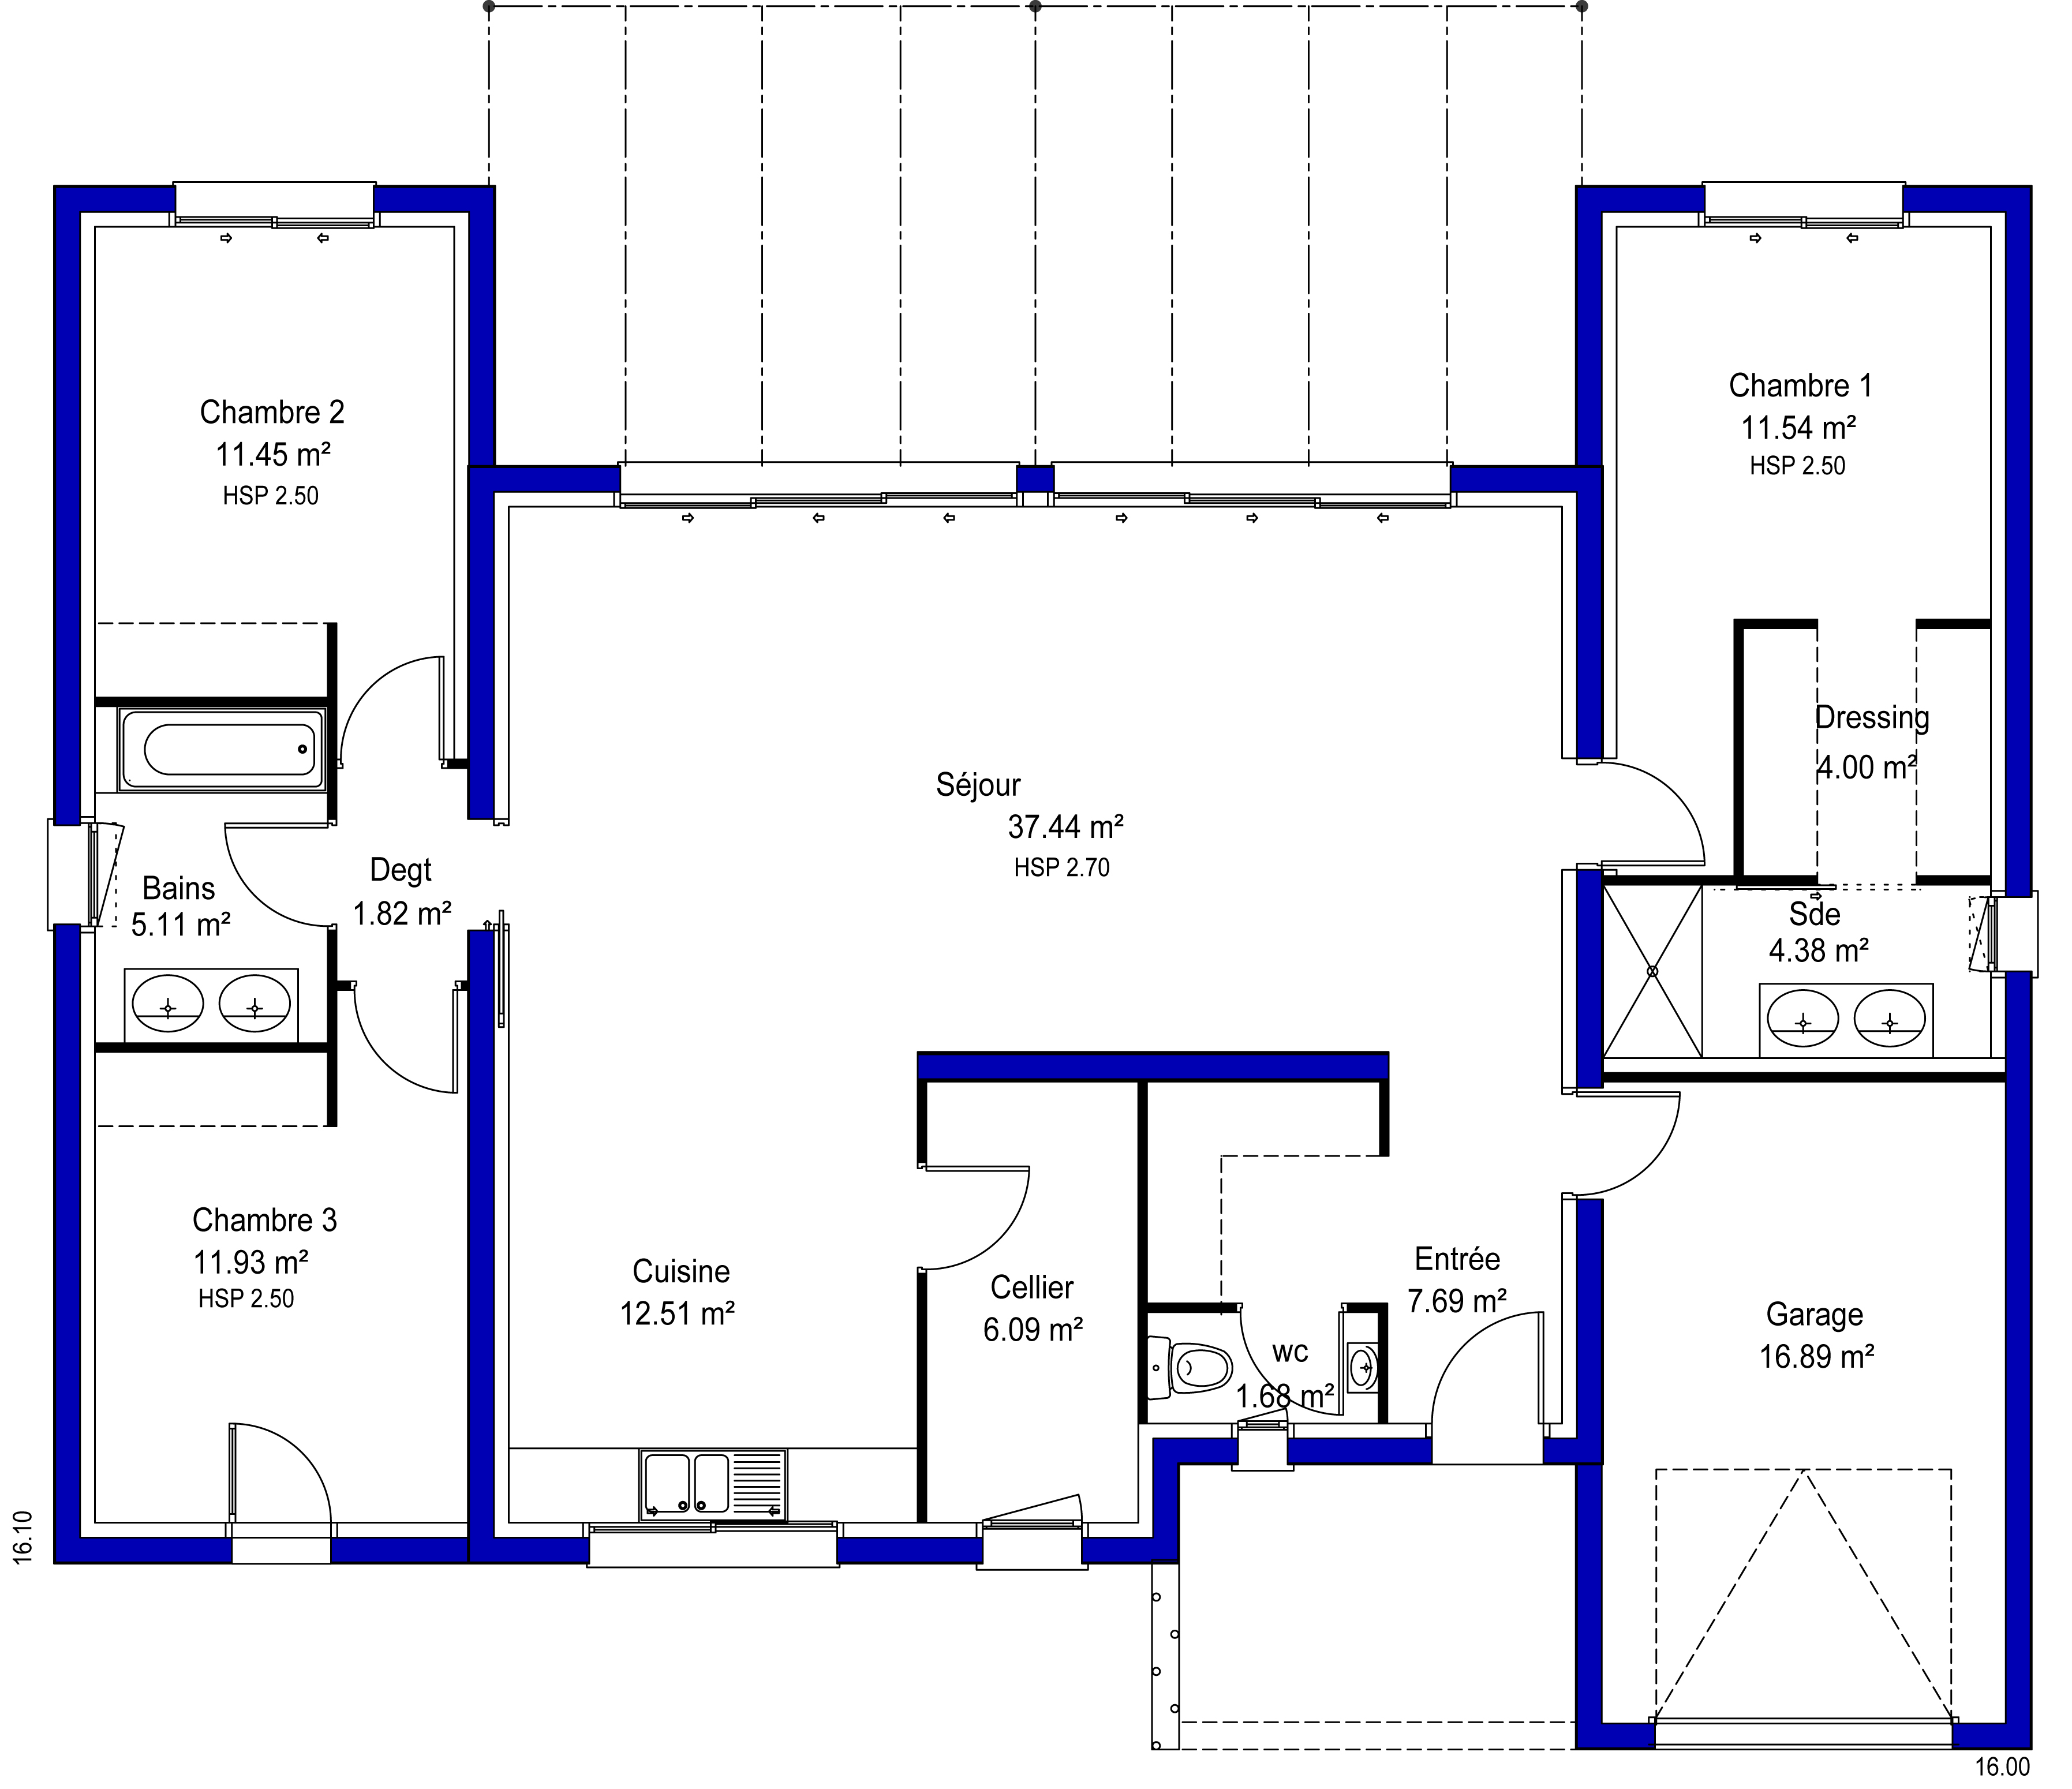 Plan de maison original perfect modele devis creation sdb - Plan de maison original ...